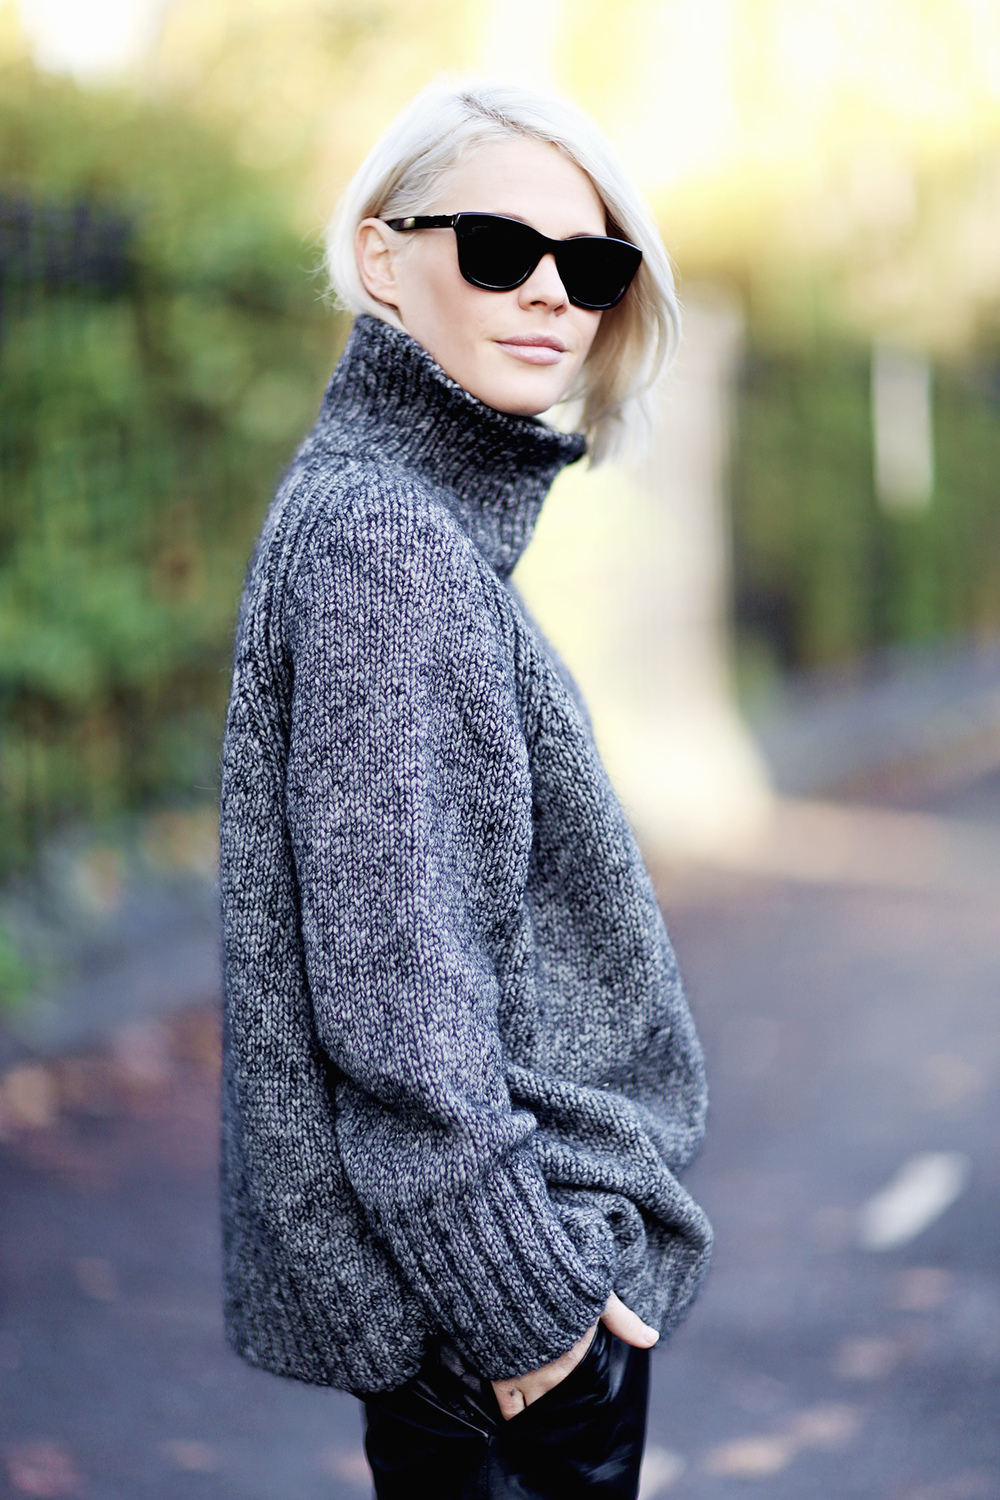 vanessabruno_turtleneck_london5.jpg